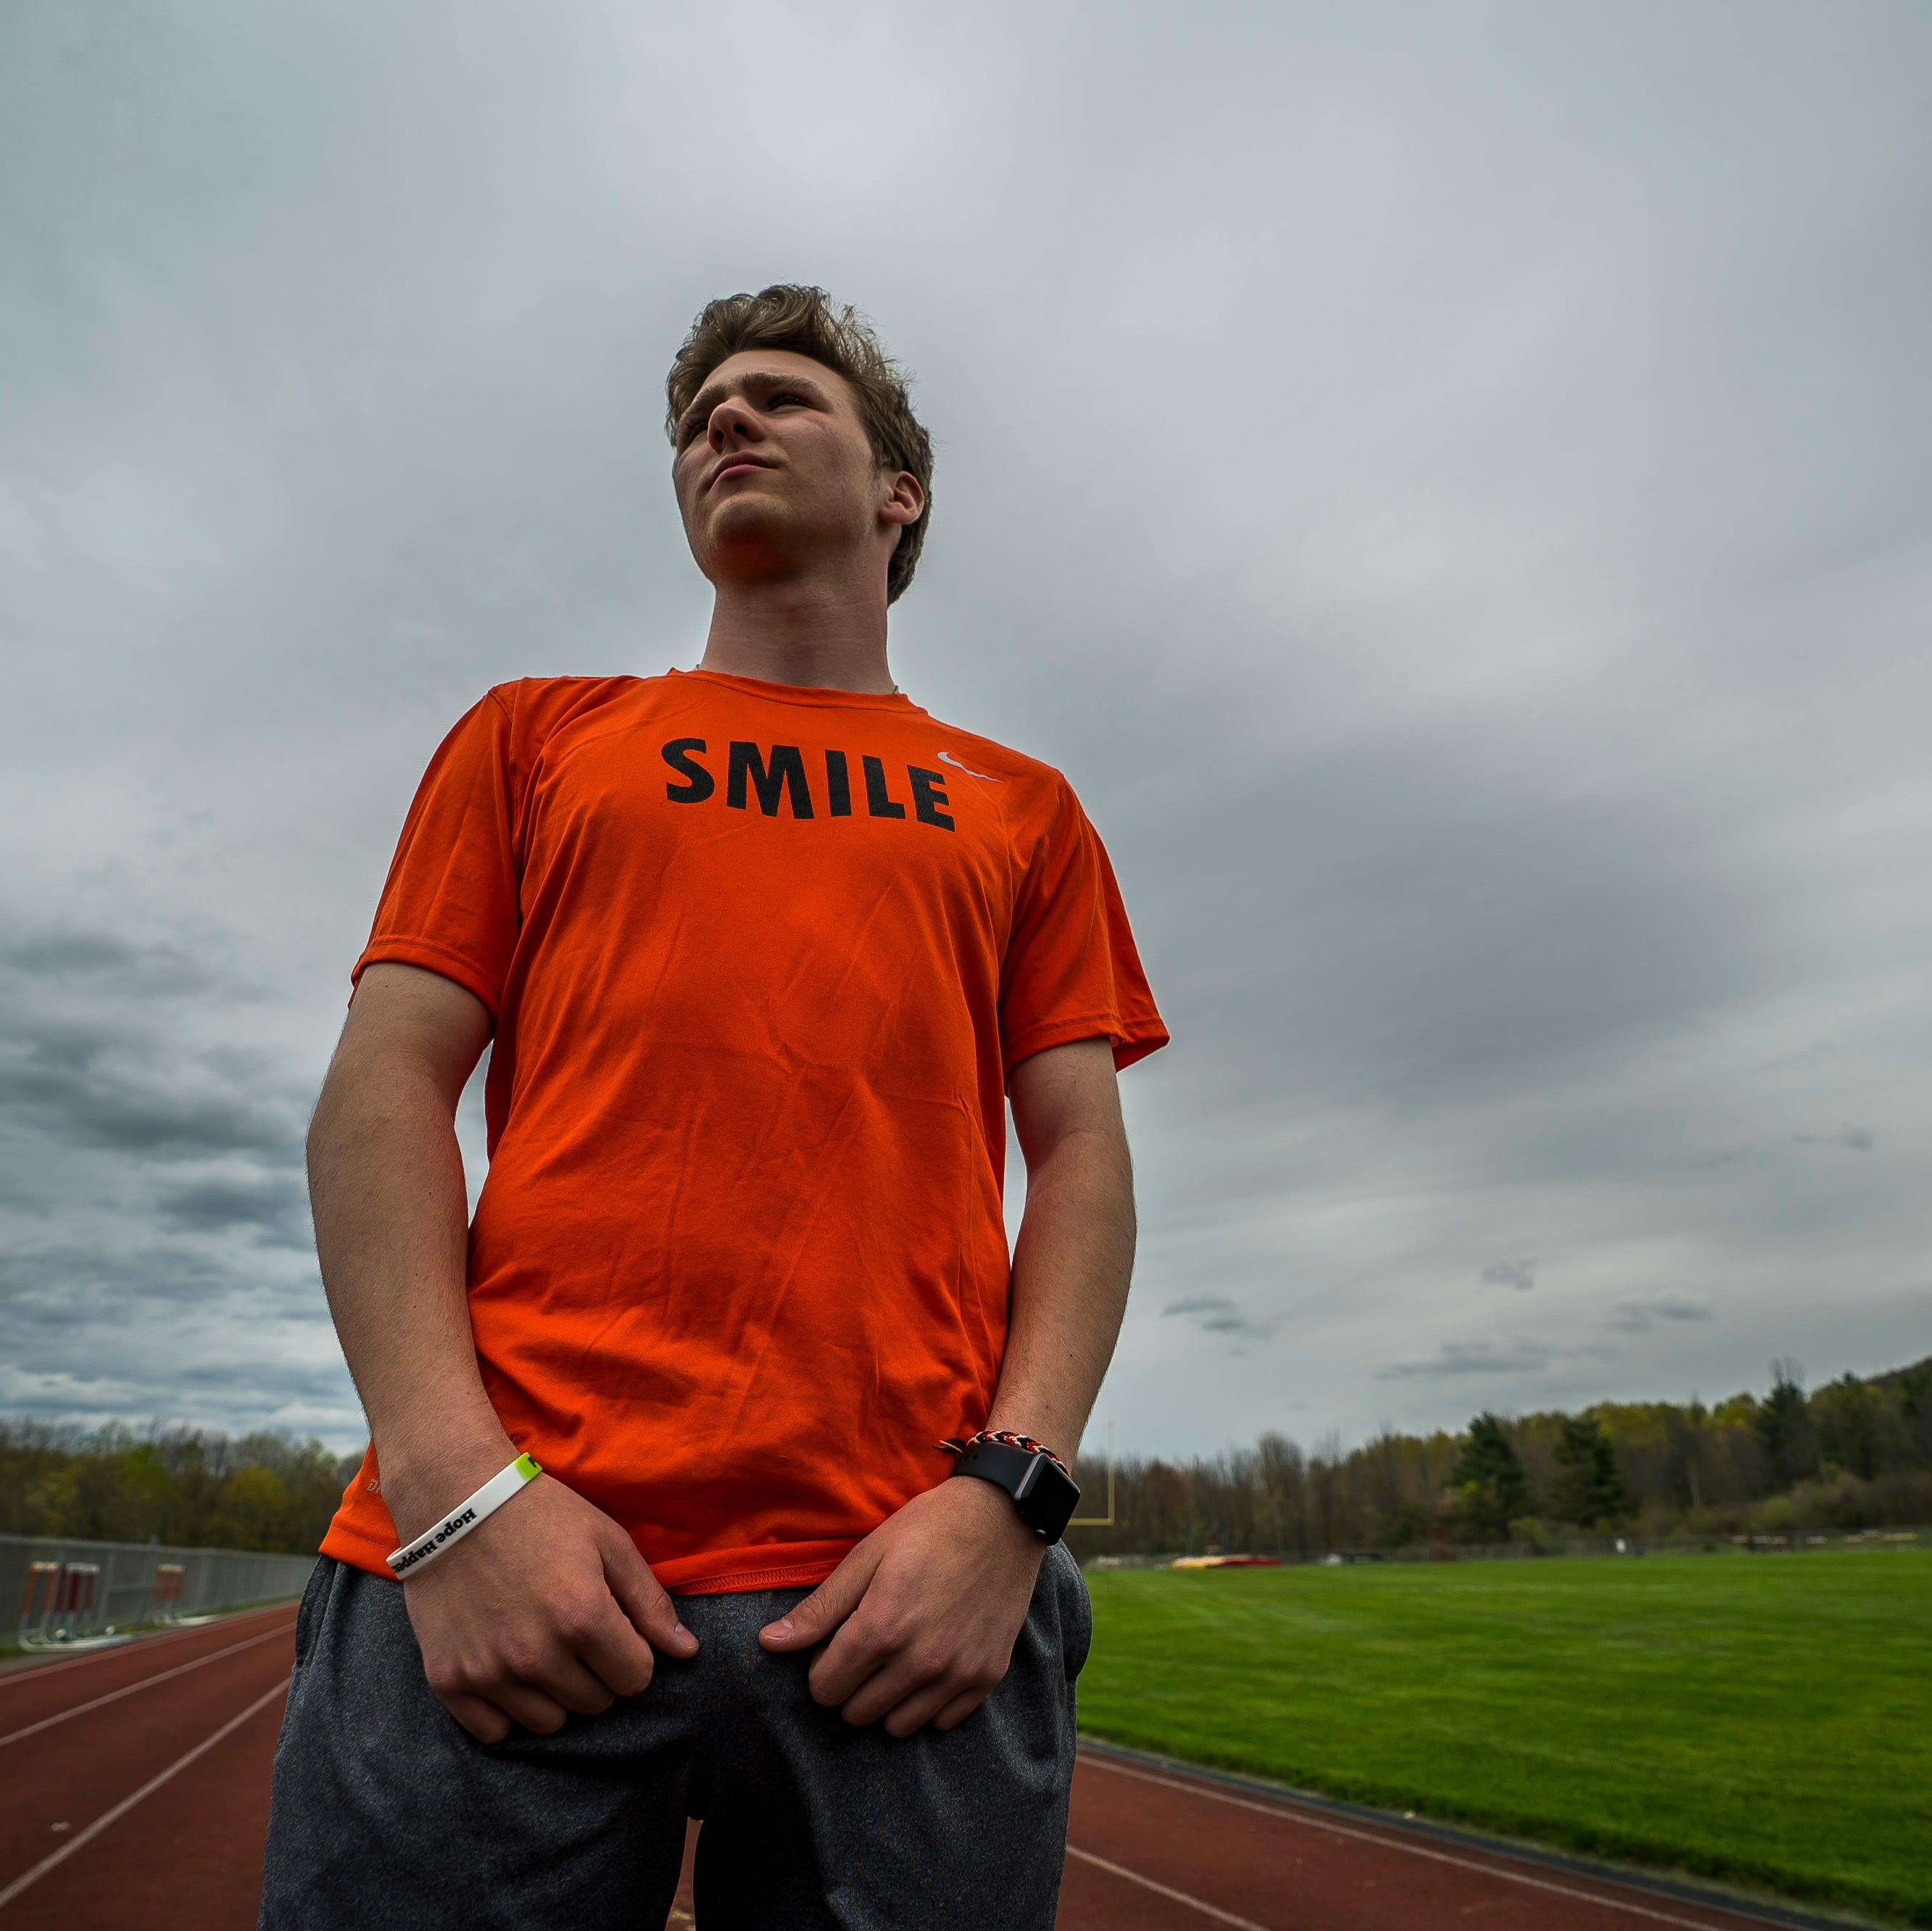 Vermont City Marathon: CVU's Tyler Skaflestad running for teen suicide awareness